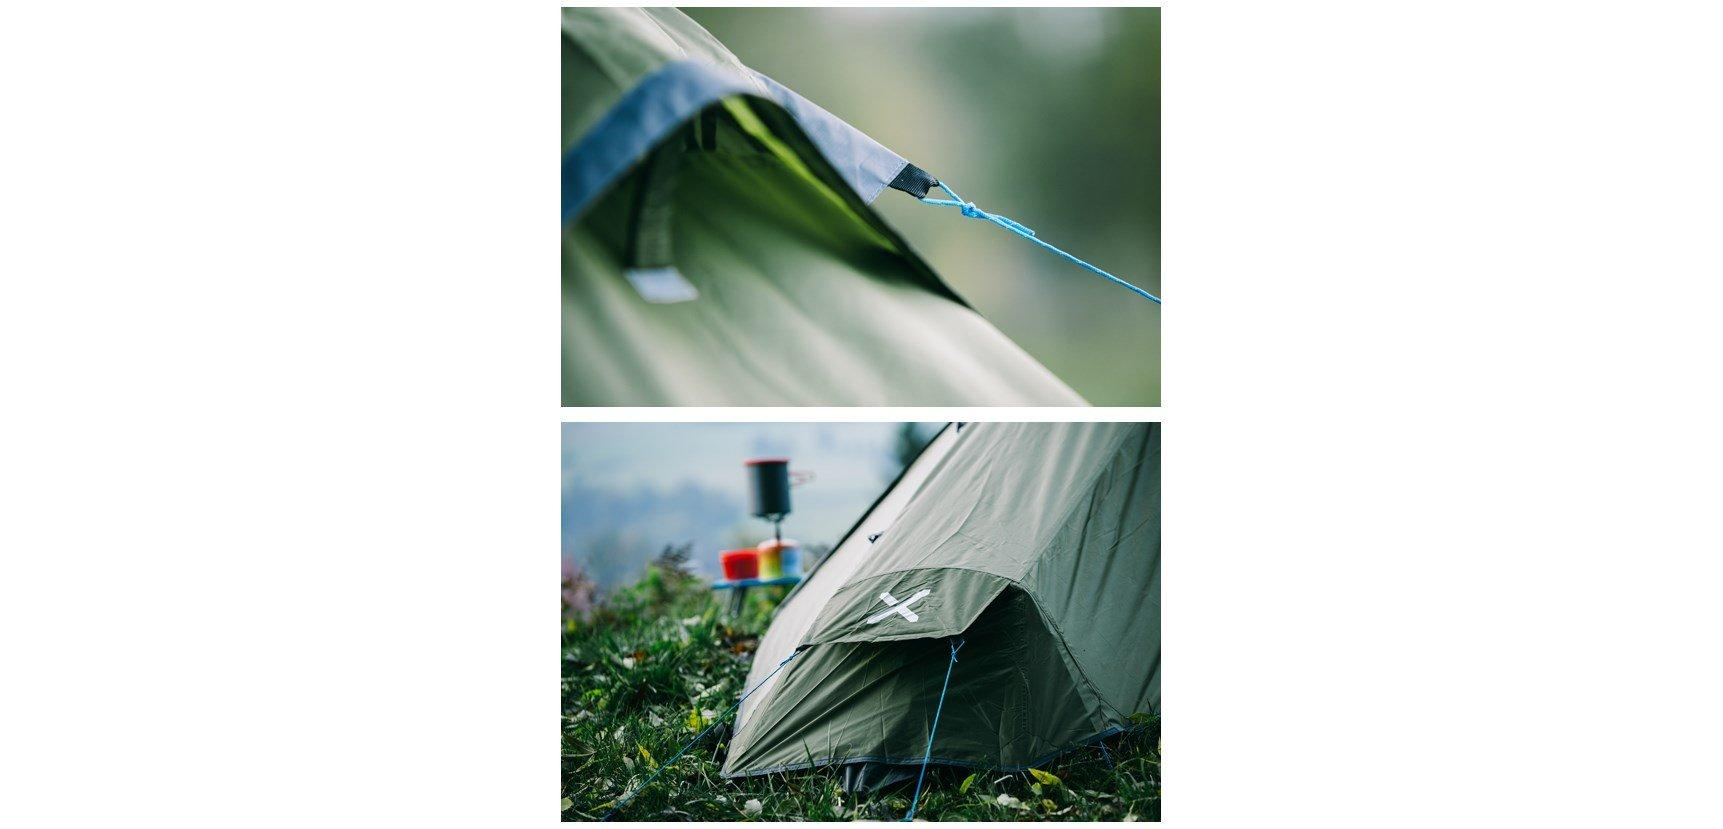 Phoxx I Backpacking Tent